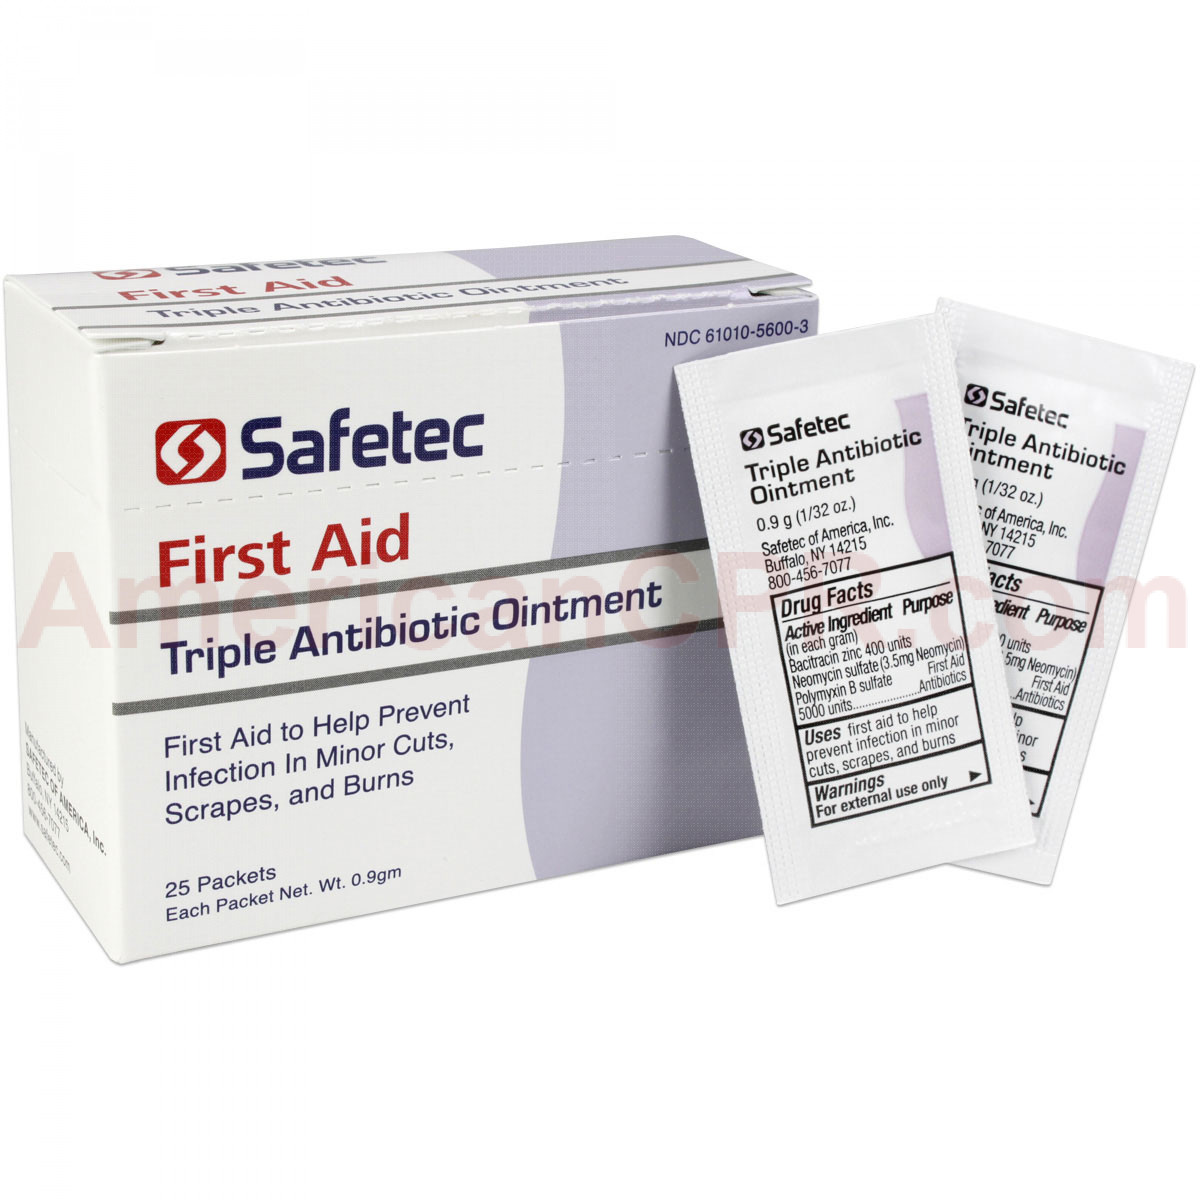 Aids in the healing of minor cuts, scrapes and burns. Apply 1 - 2 times daily for optimum results